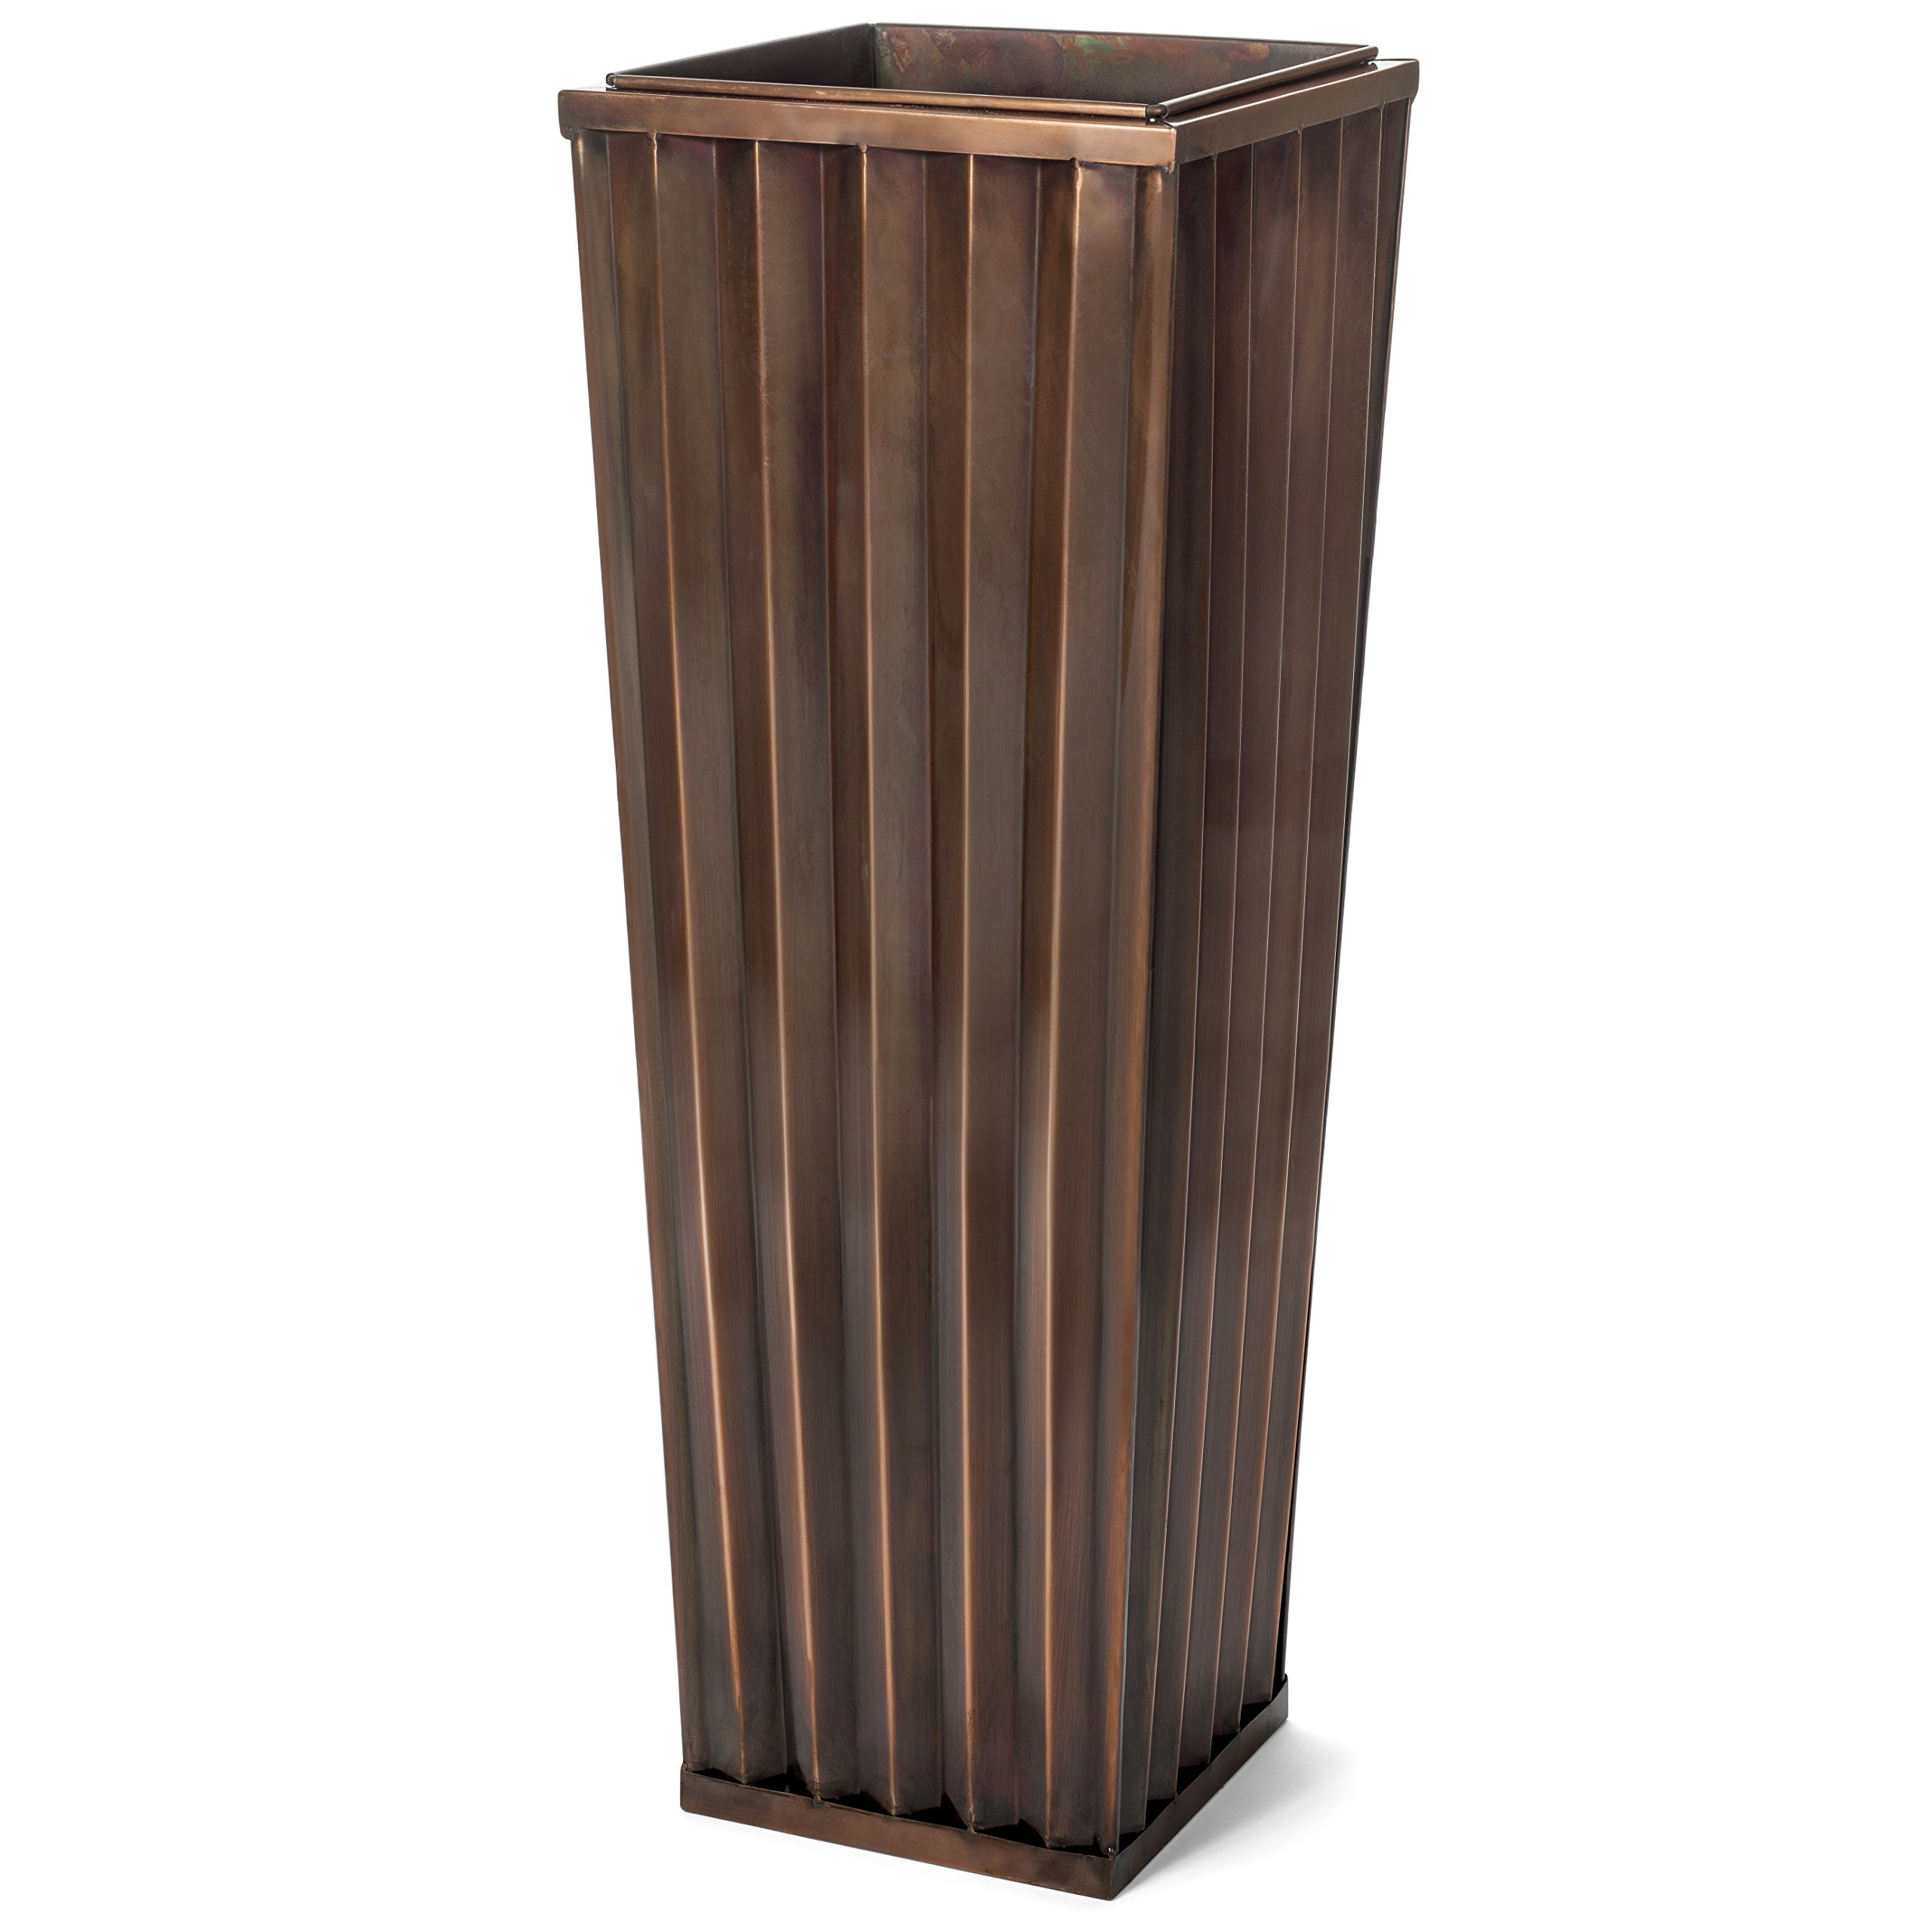 H Potter Tall Outdoor Indoor Planter Patio Deck Flower Ribbed Garden Planters Antique Copper Finish (LARGE) by H Potter